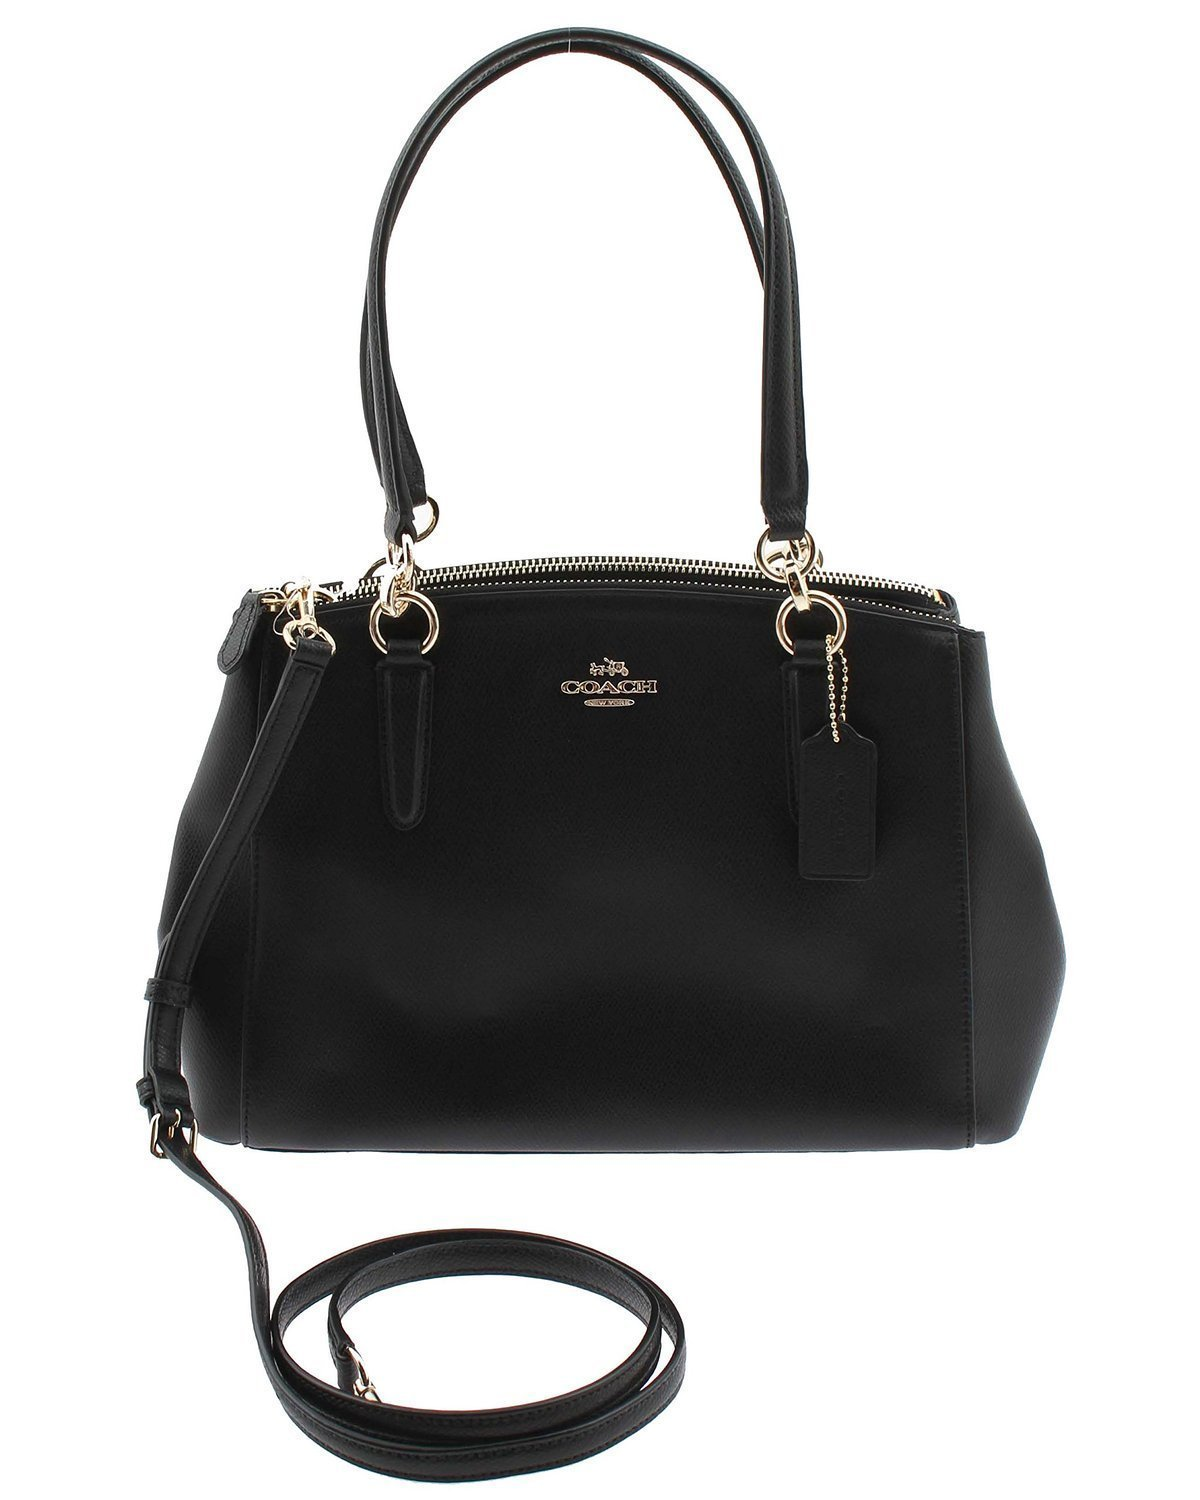 30af3a9721 Buy Coach 30402 Madison Mini Christie Carryall in Saffiano Leather ...